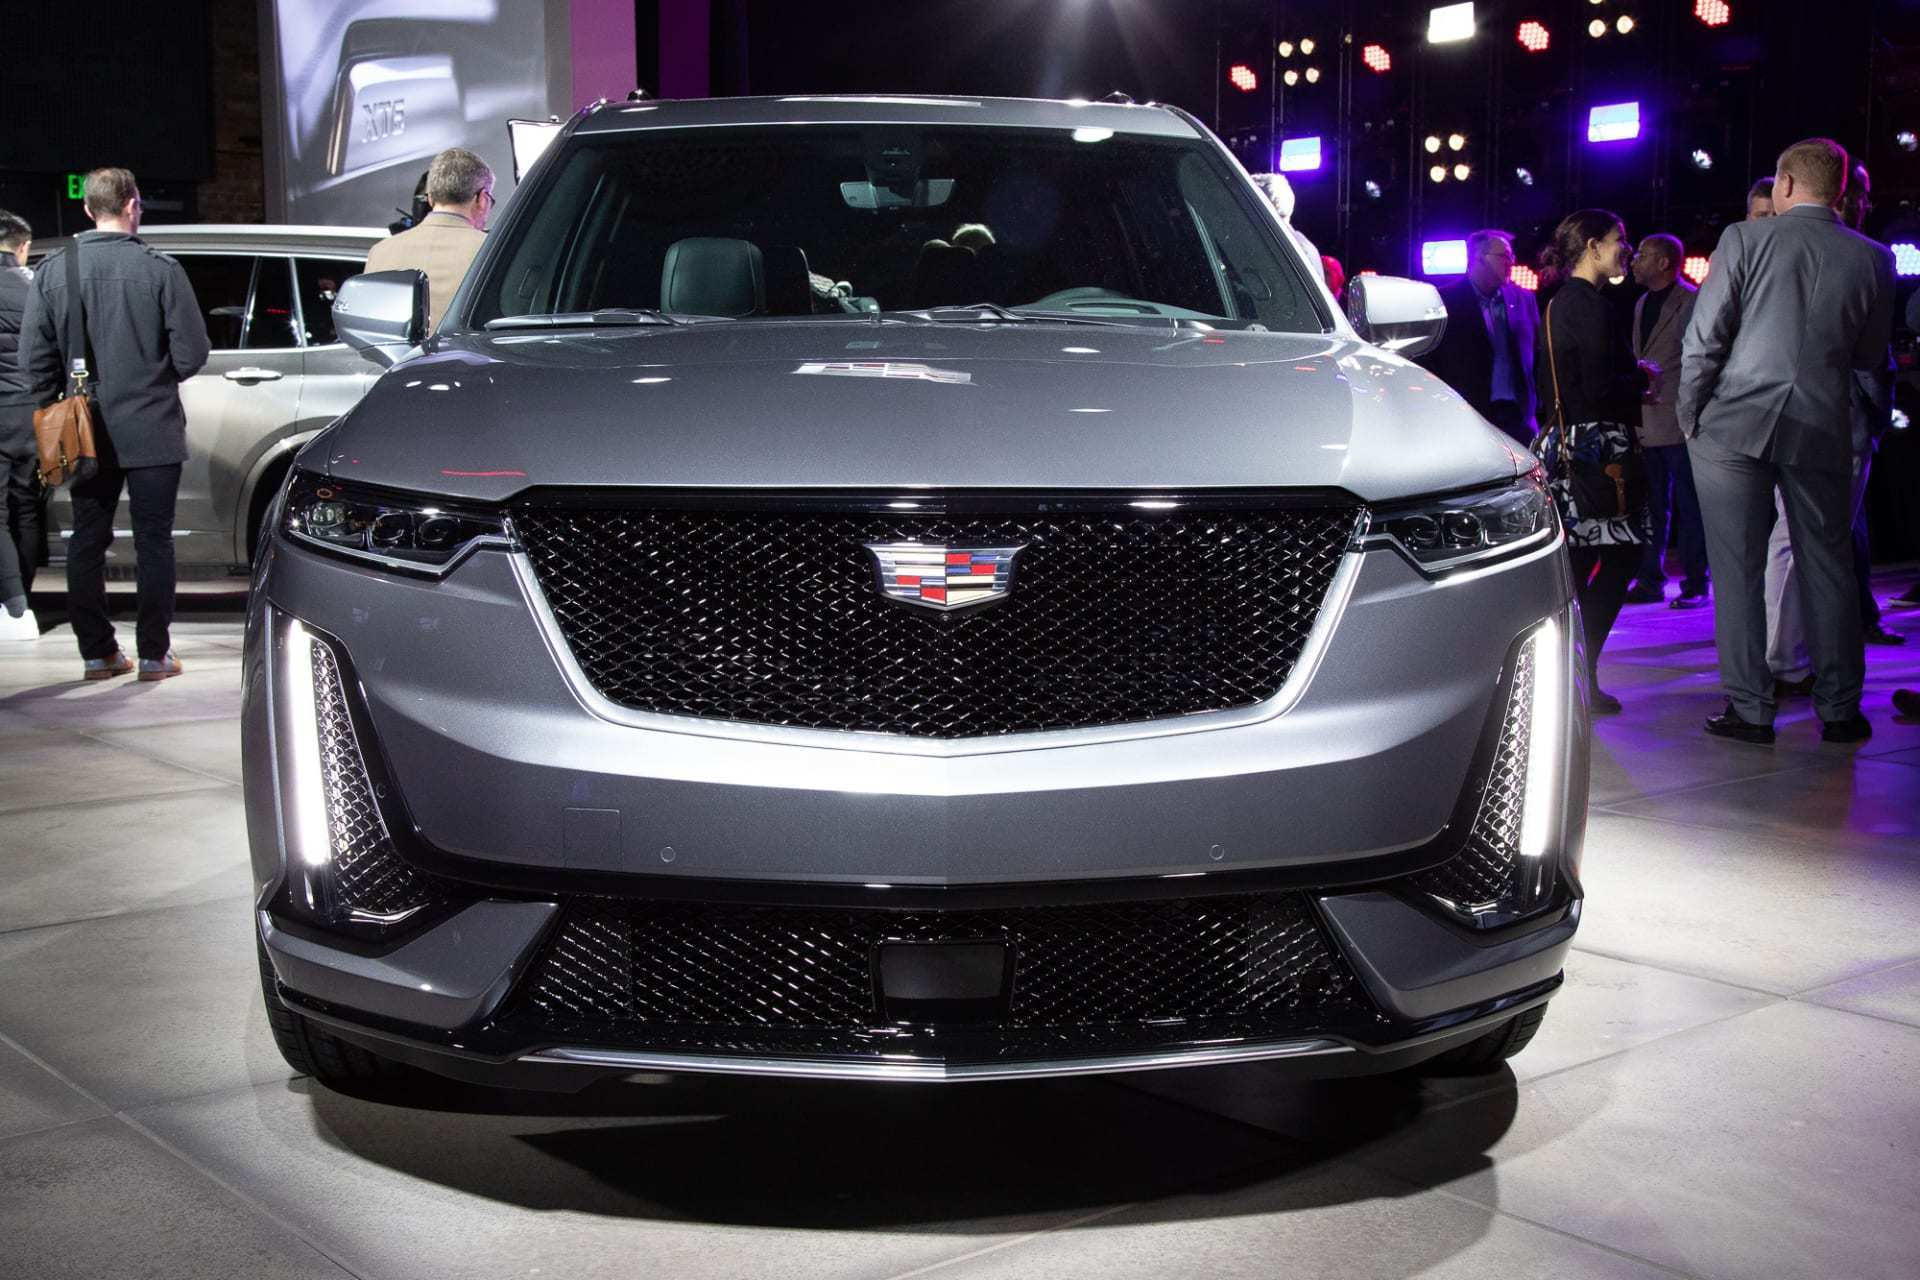 79 New Cadillac Cars For 2020 Overview